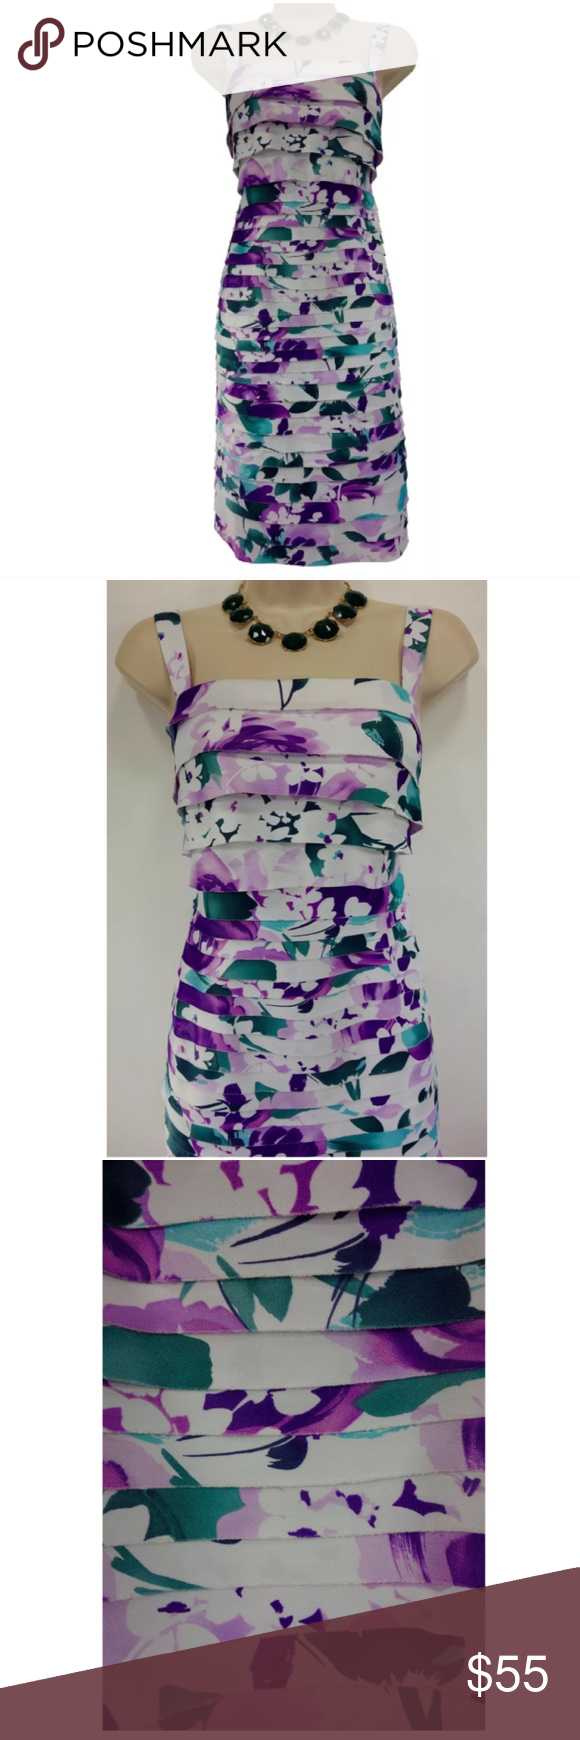 "Size 22W 3X FLORAL TIERED DRESS Wedding Plus Size We love this sexy, gorgeous, tiered dress for a very special occasion ~ Size: 22W Back zip Lined bust area Flattering tiered style Stunning floral print in shades of purple & green Measurements: Bust (armpit to armpit):  49"" Waist: 49"" Hips:  54"" relaxed Length: 41.5"" (top of shoulder to bottom hem)  Condition:  PRISTINE CONDITION!   Fabric Content: 97% Polyester 3% Spandex Fabric Care:  Machine Wash Dressbarn Collection Dresses"